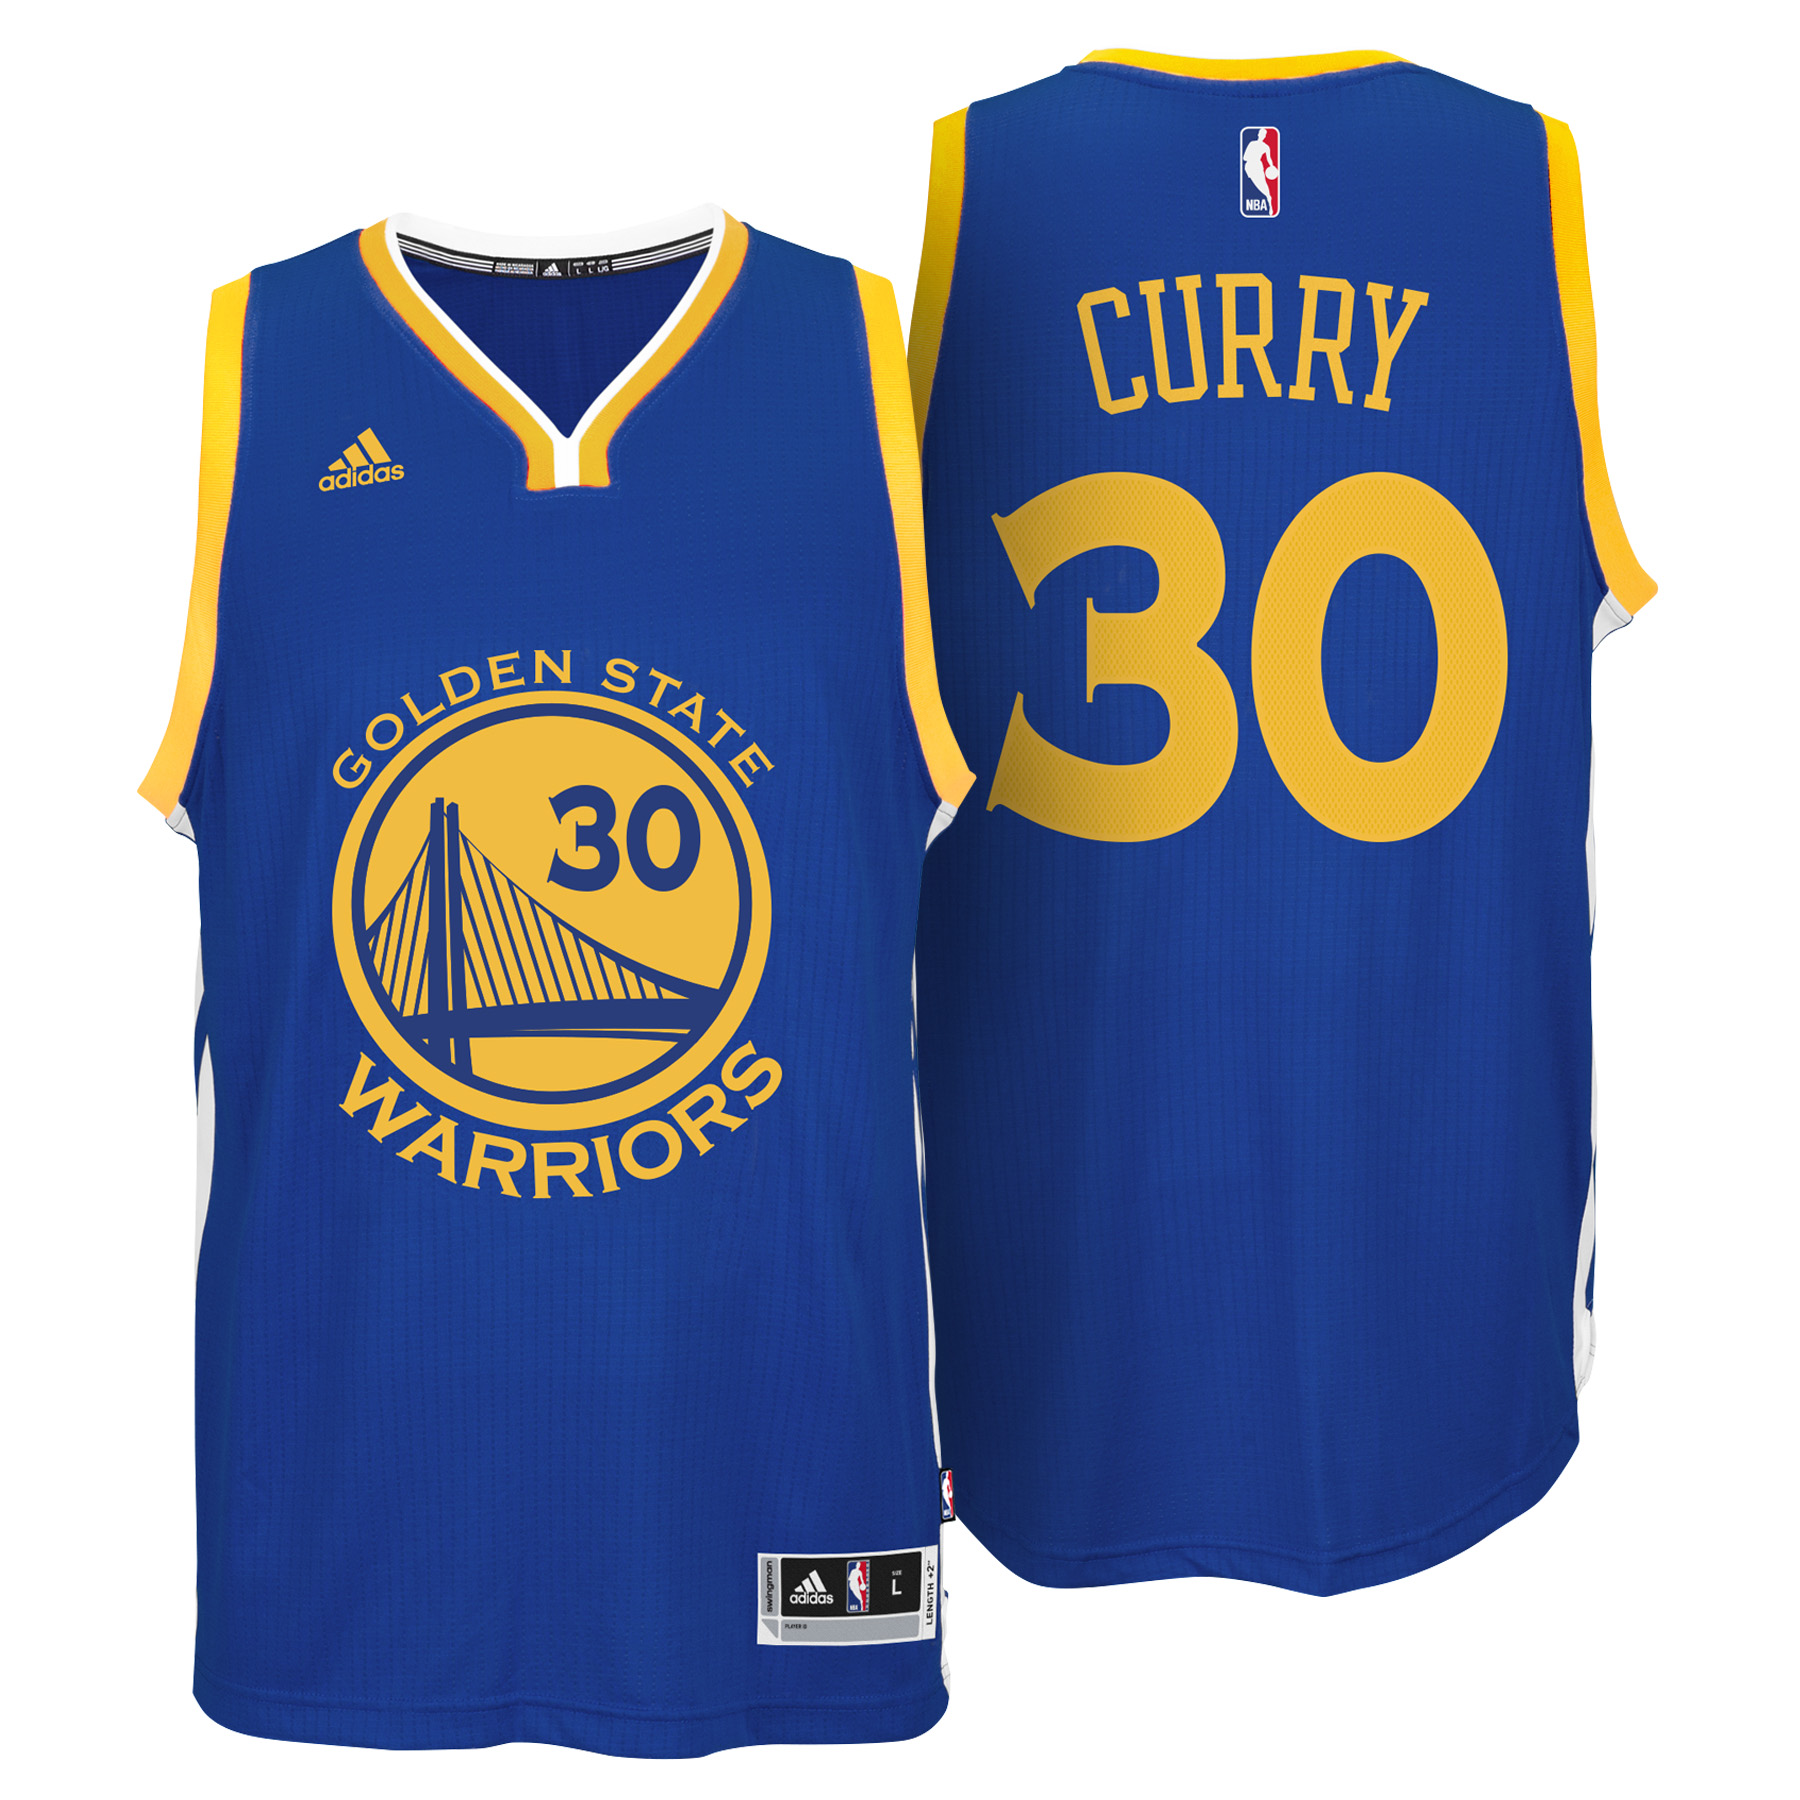 Golden State Warriors Road Swingman Jersey - Stephen Curry - Youths